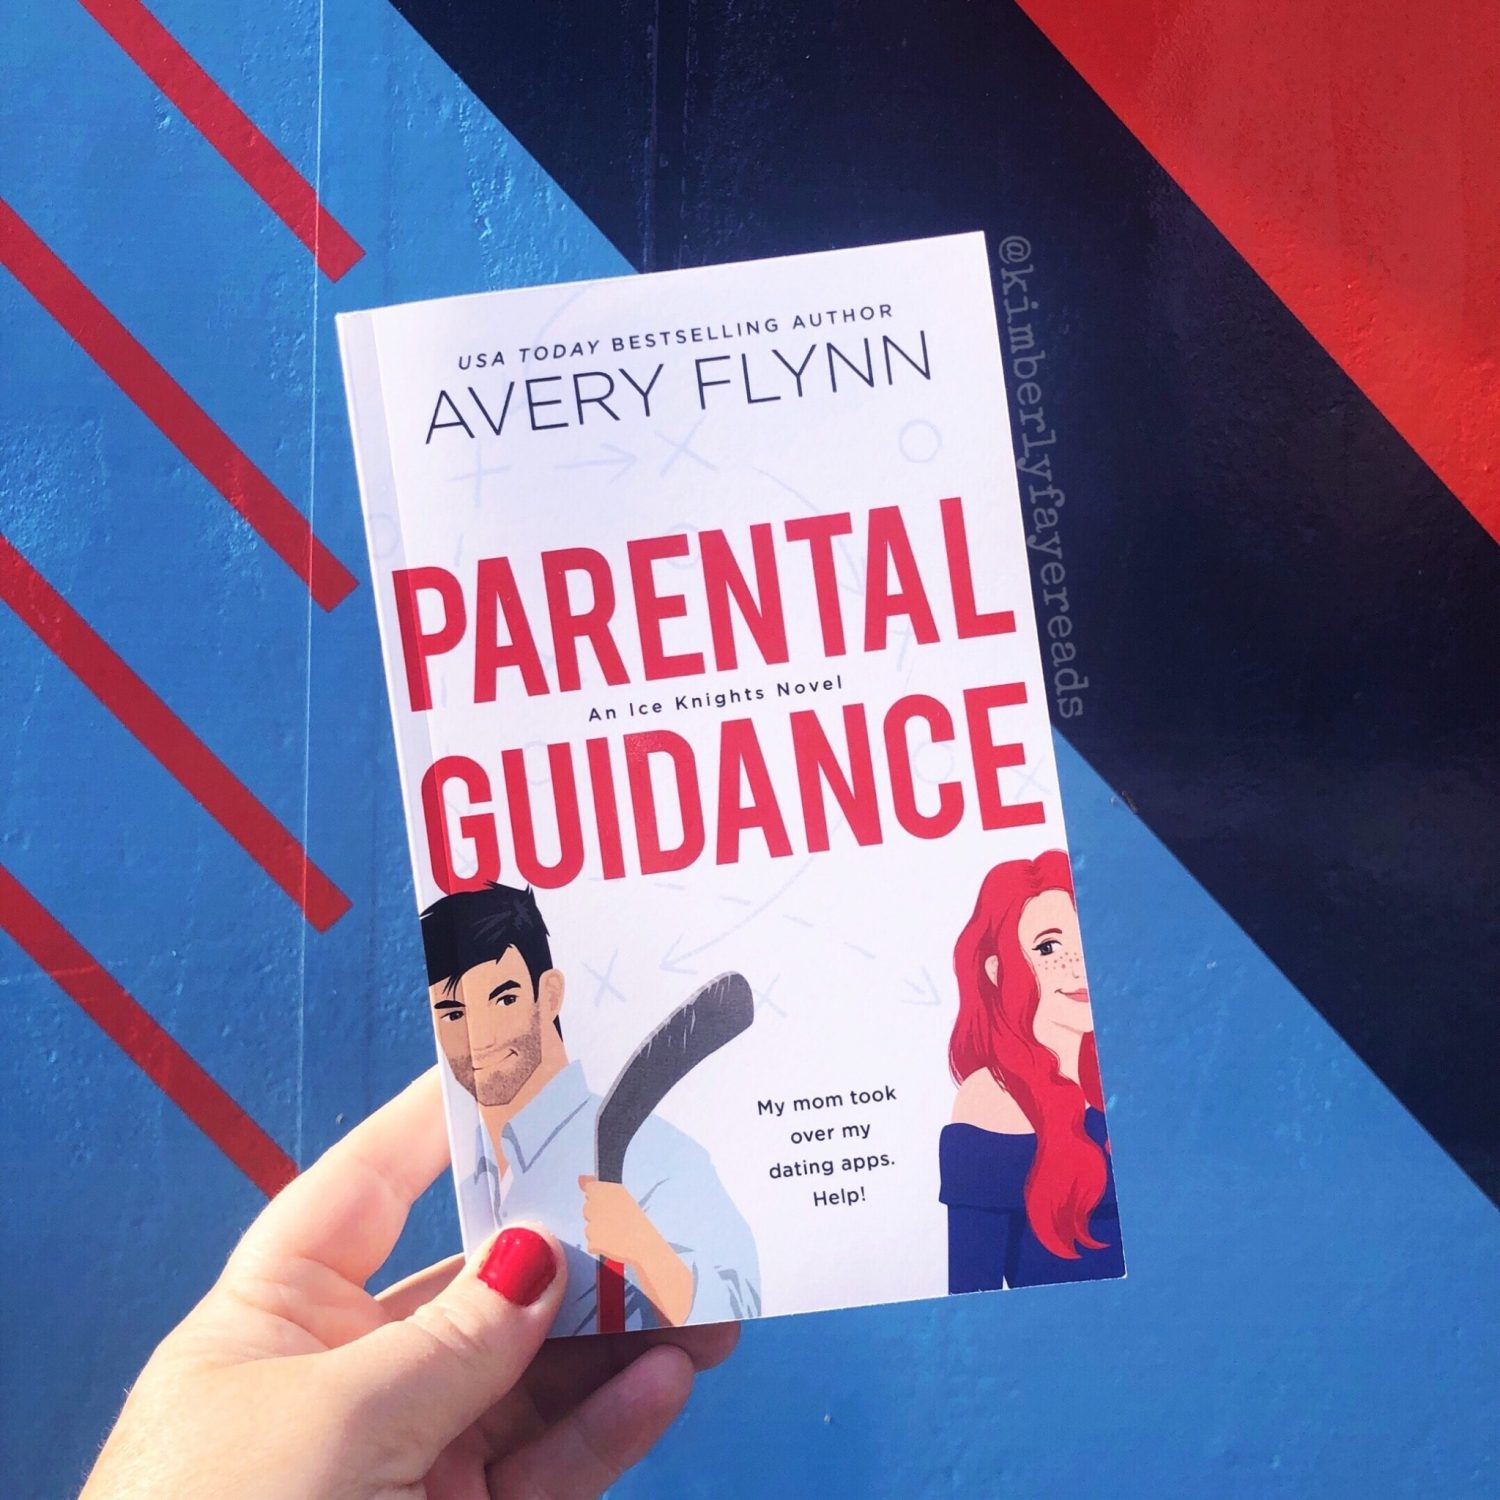 In Review: Parental Guidance (Ice Knights #1) by Avery Flynn